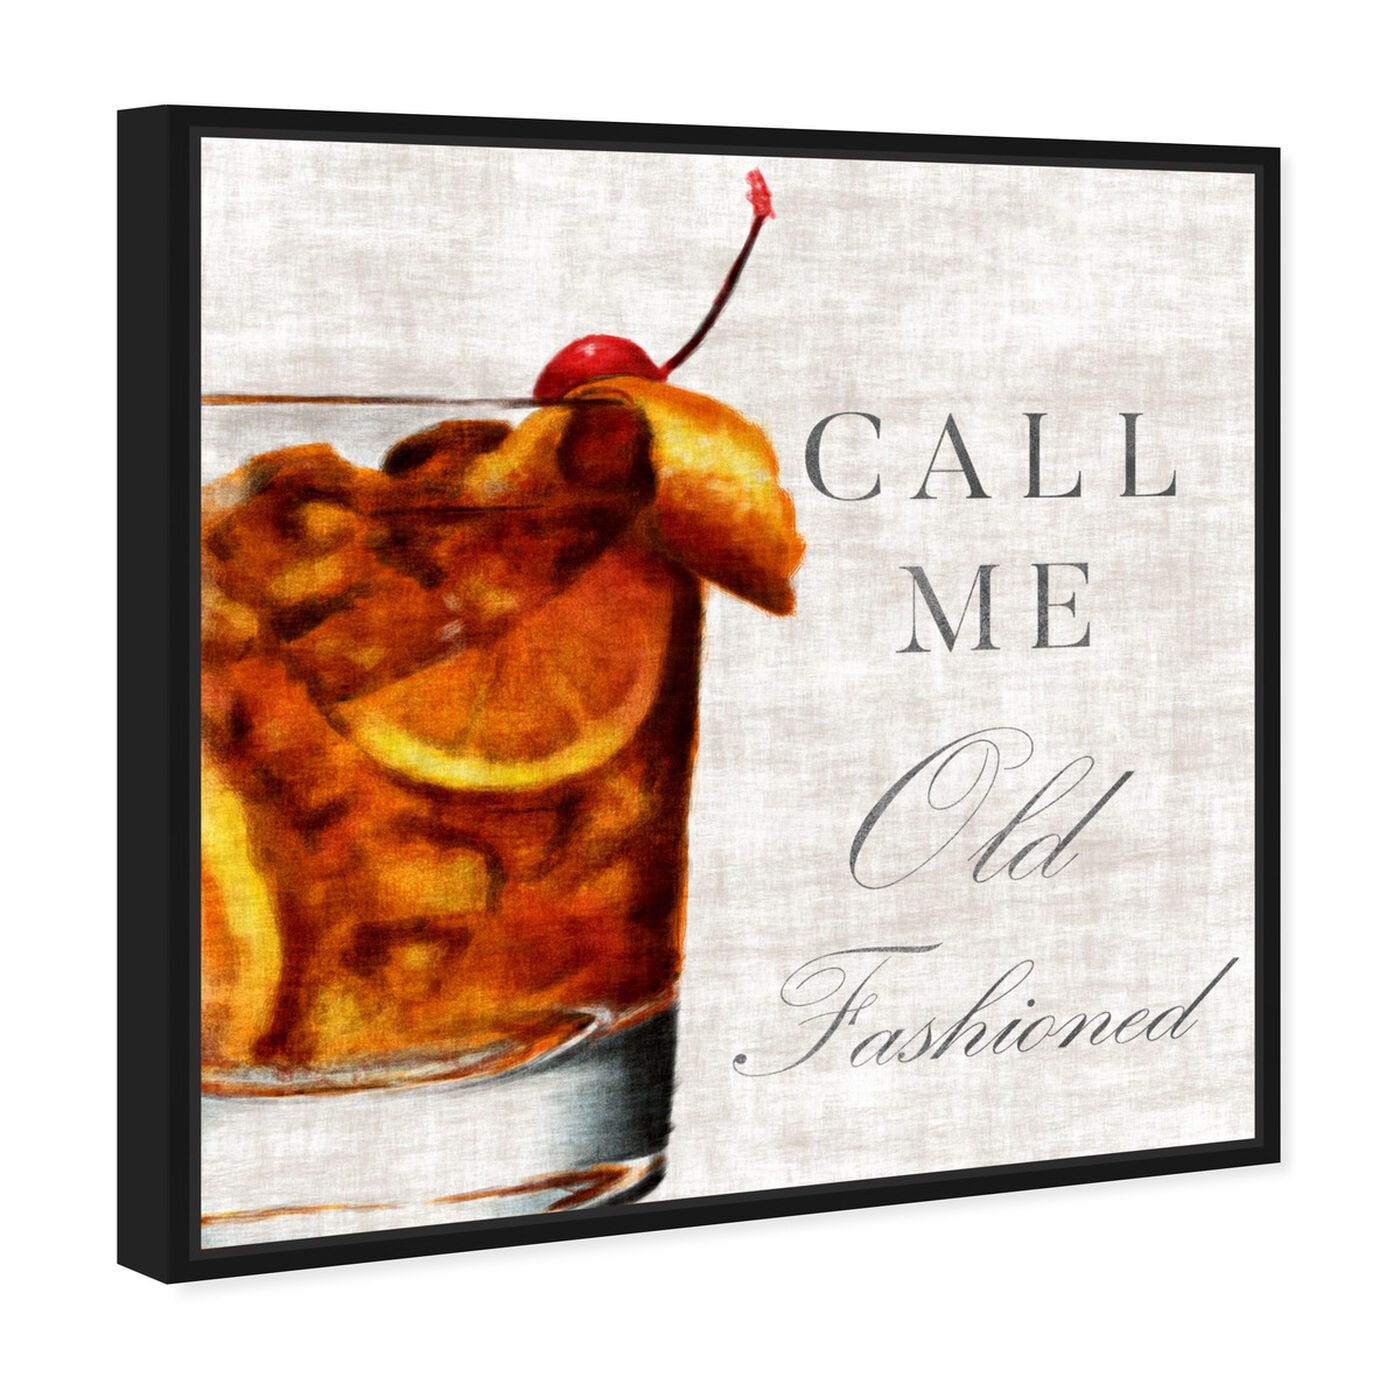 Angled view of Call Me Old Fashioned featuring drinks and spirits and liquor art.